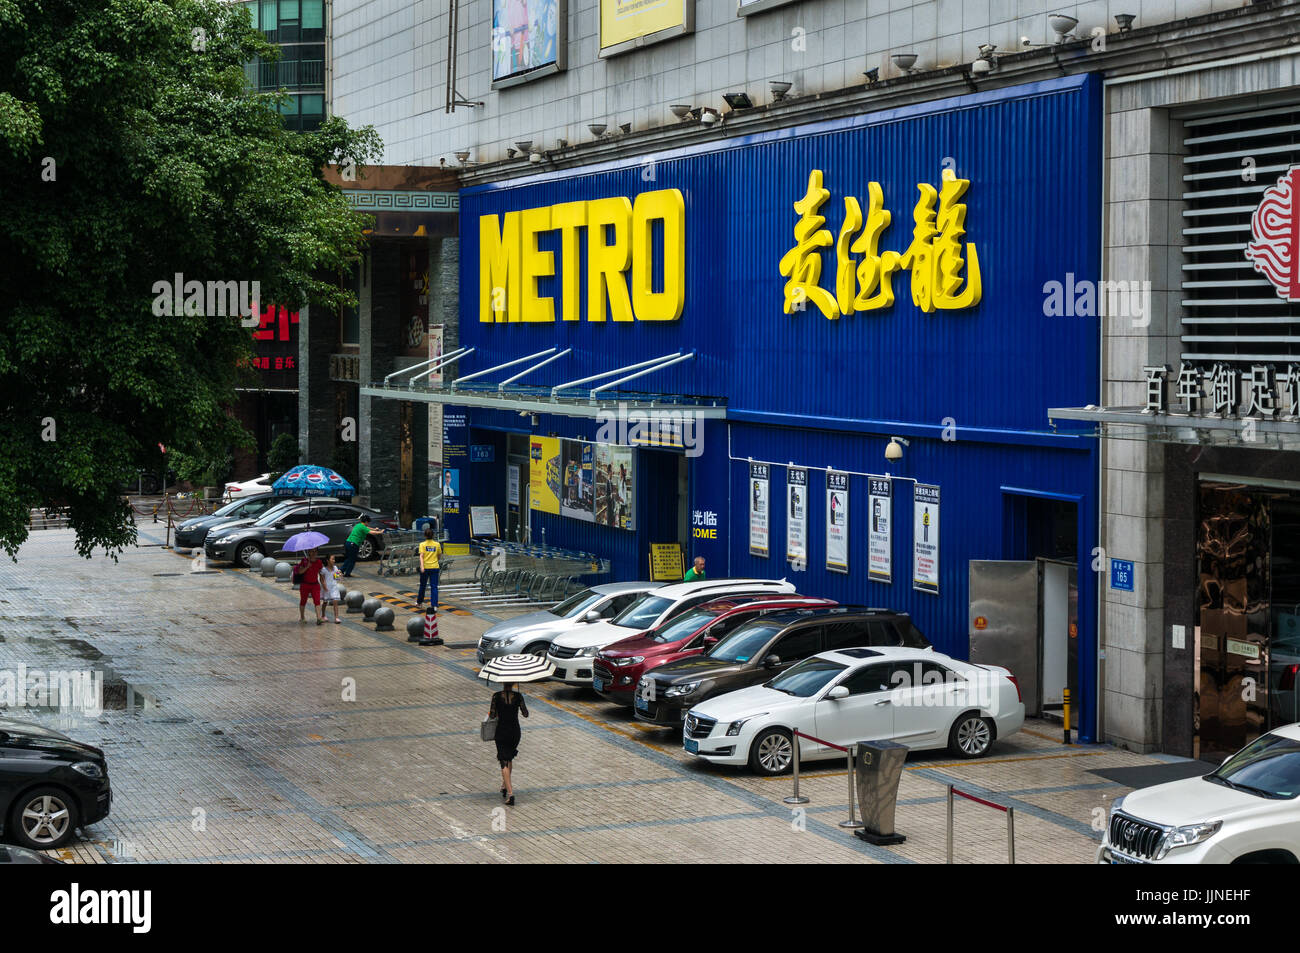 Cash Pool Niederlande Metro Cash Carry Store Metro Stockfotos And Metro Cash Carry